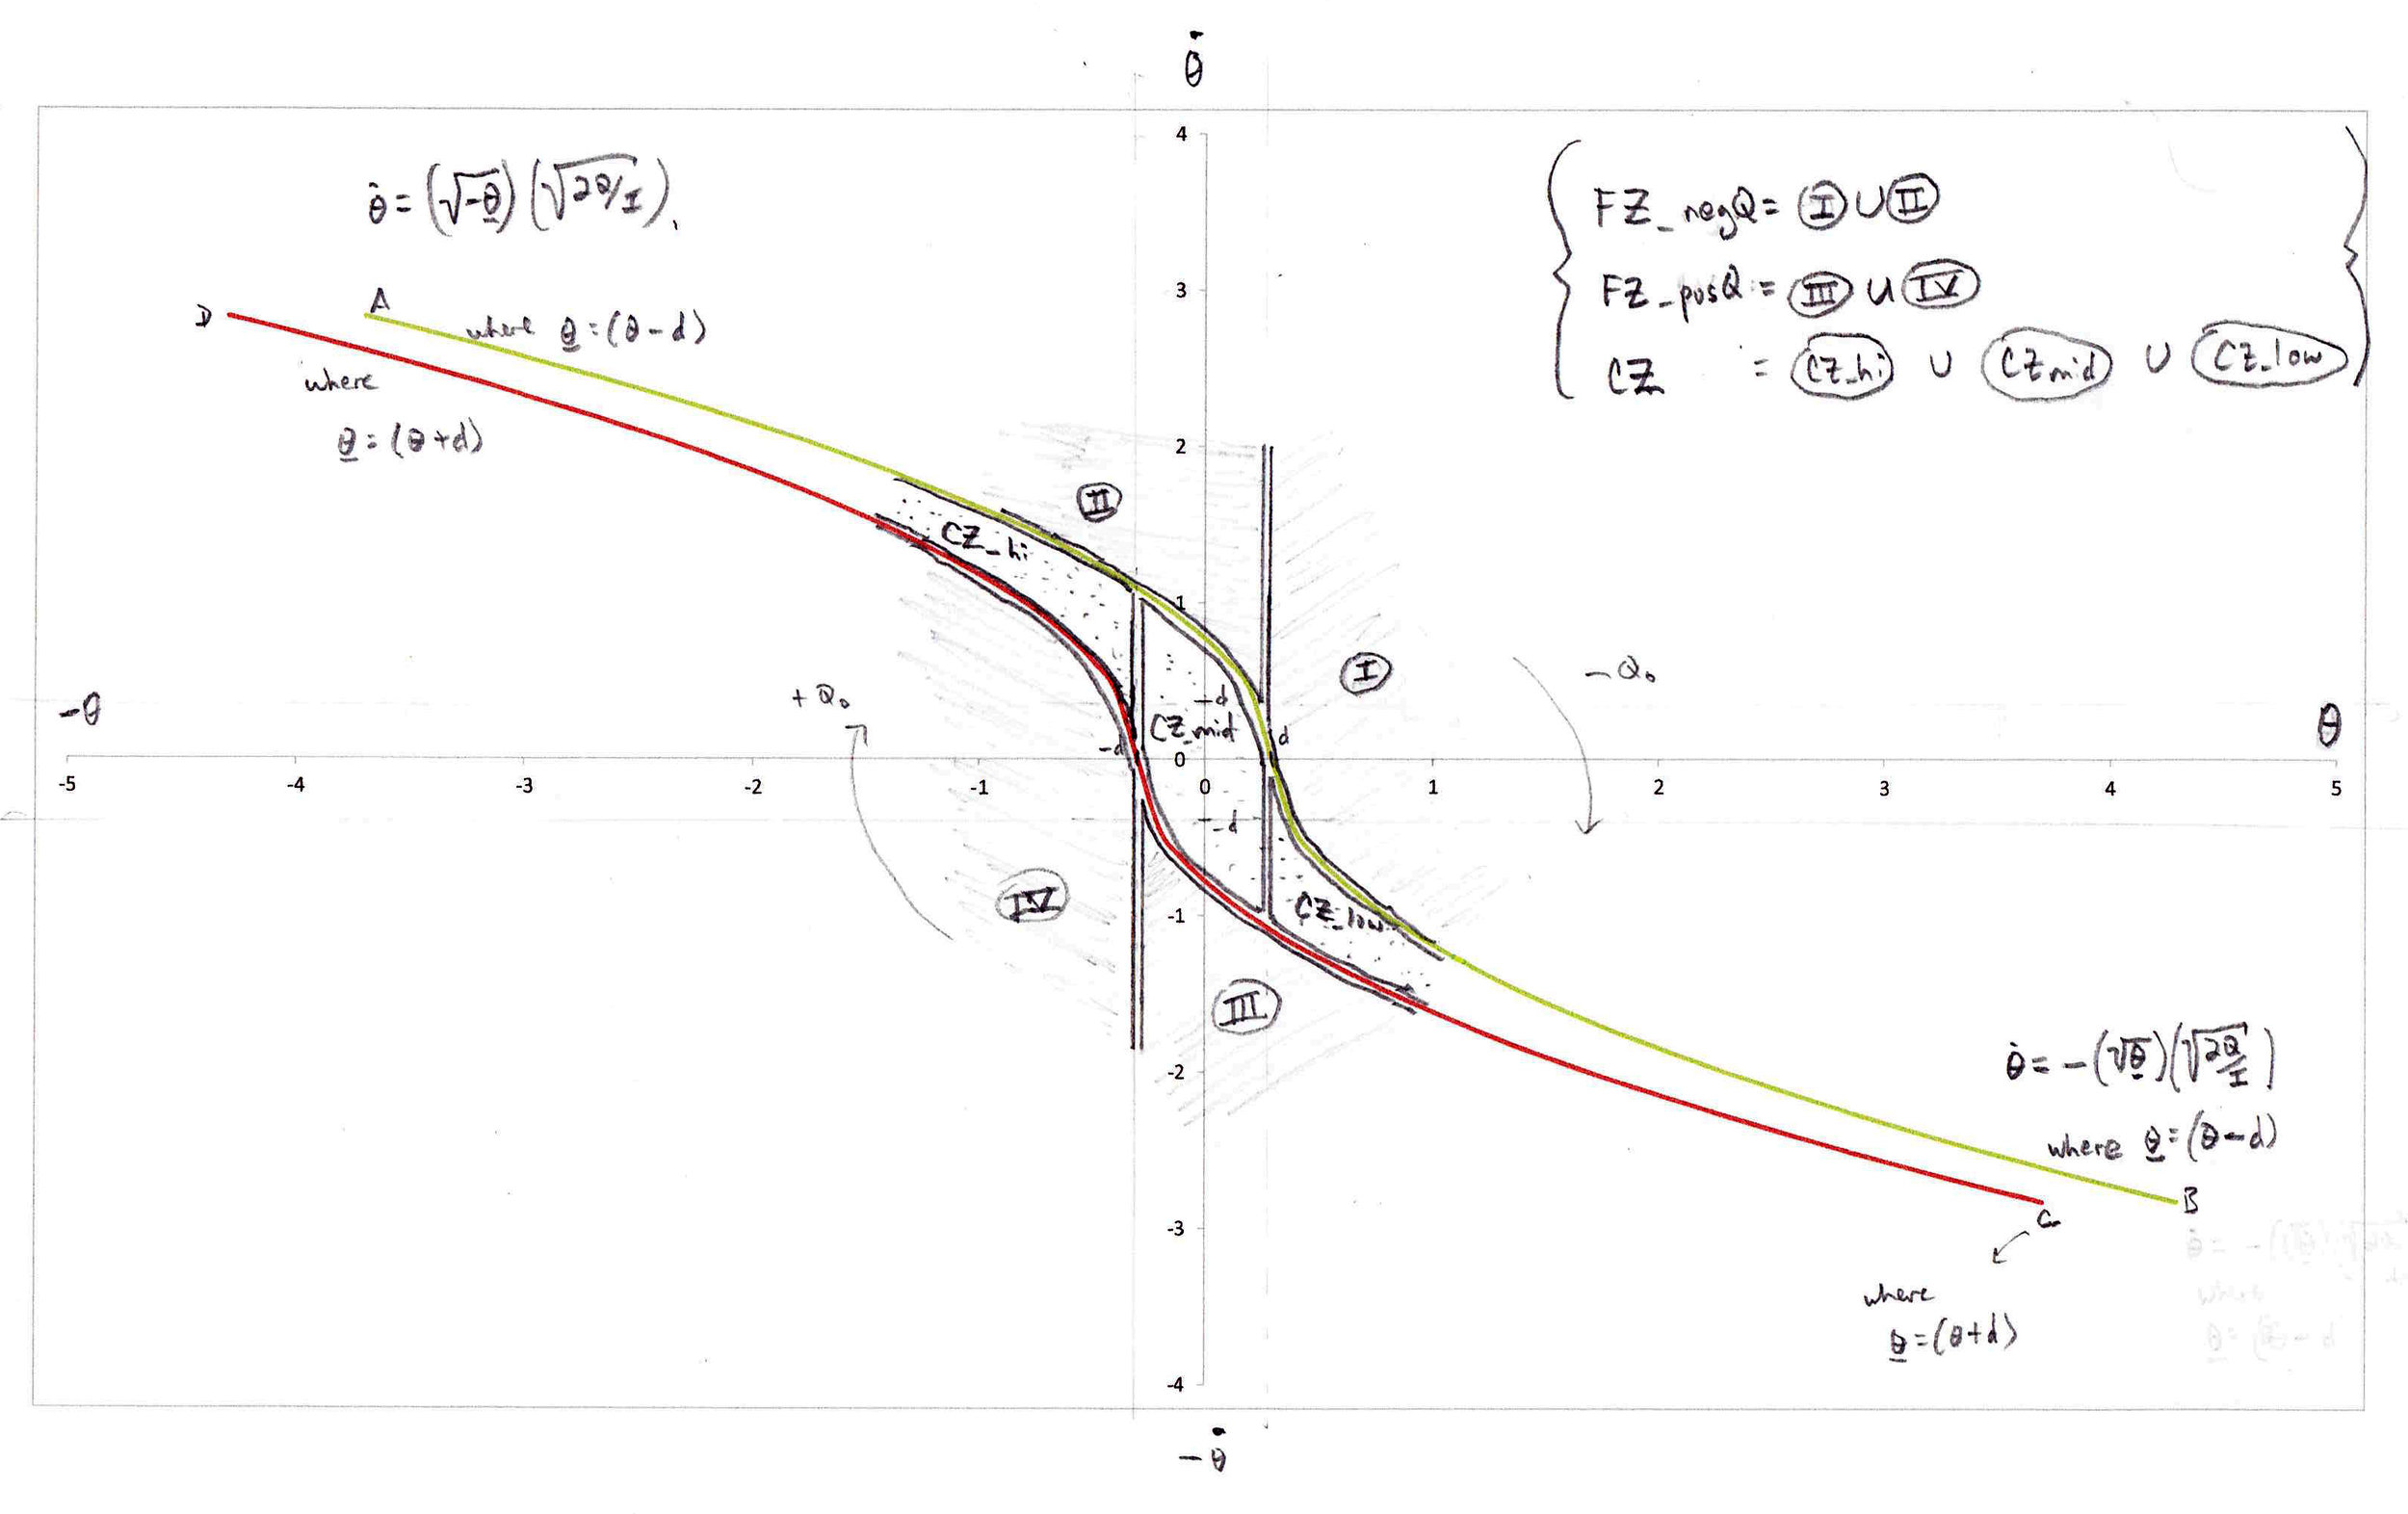 Switching curve plots and formulas. X-axis = attitude; Y-axis = angular velocity; FZ = fire zone; CZ = coast zone;+Q = positive jets; -Q = negative jets. The quadrants I-IV represent conditions to check in the controls software.